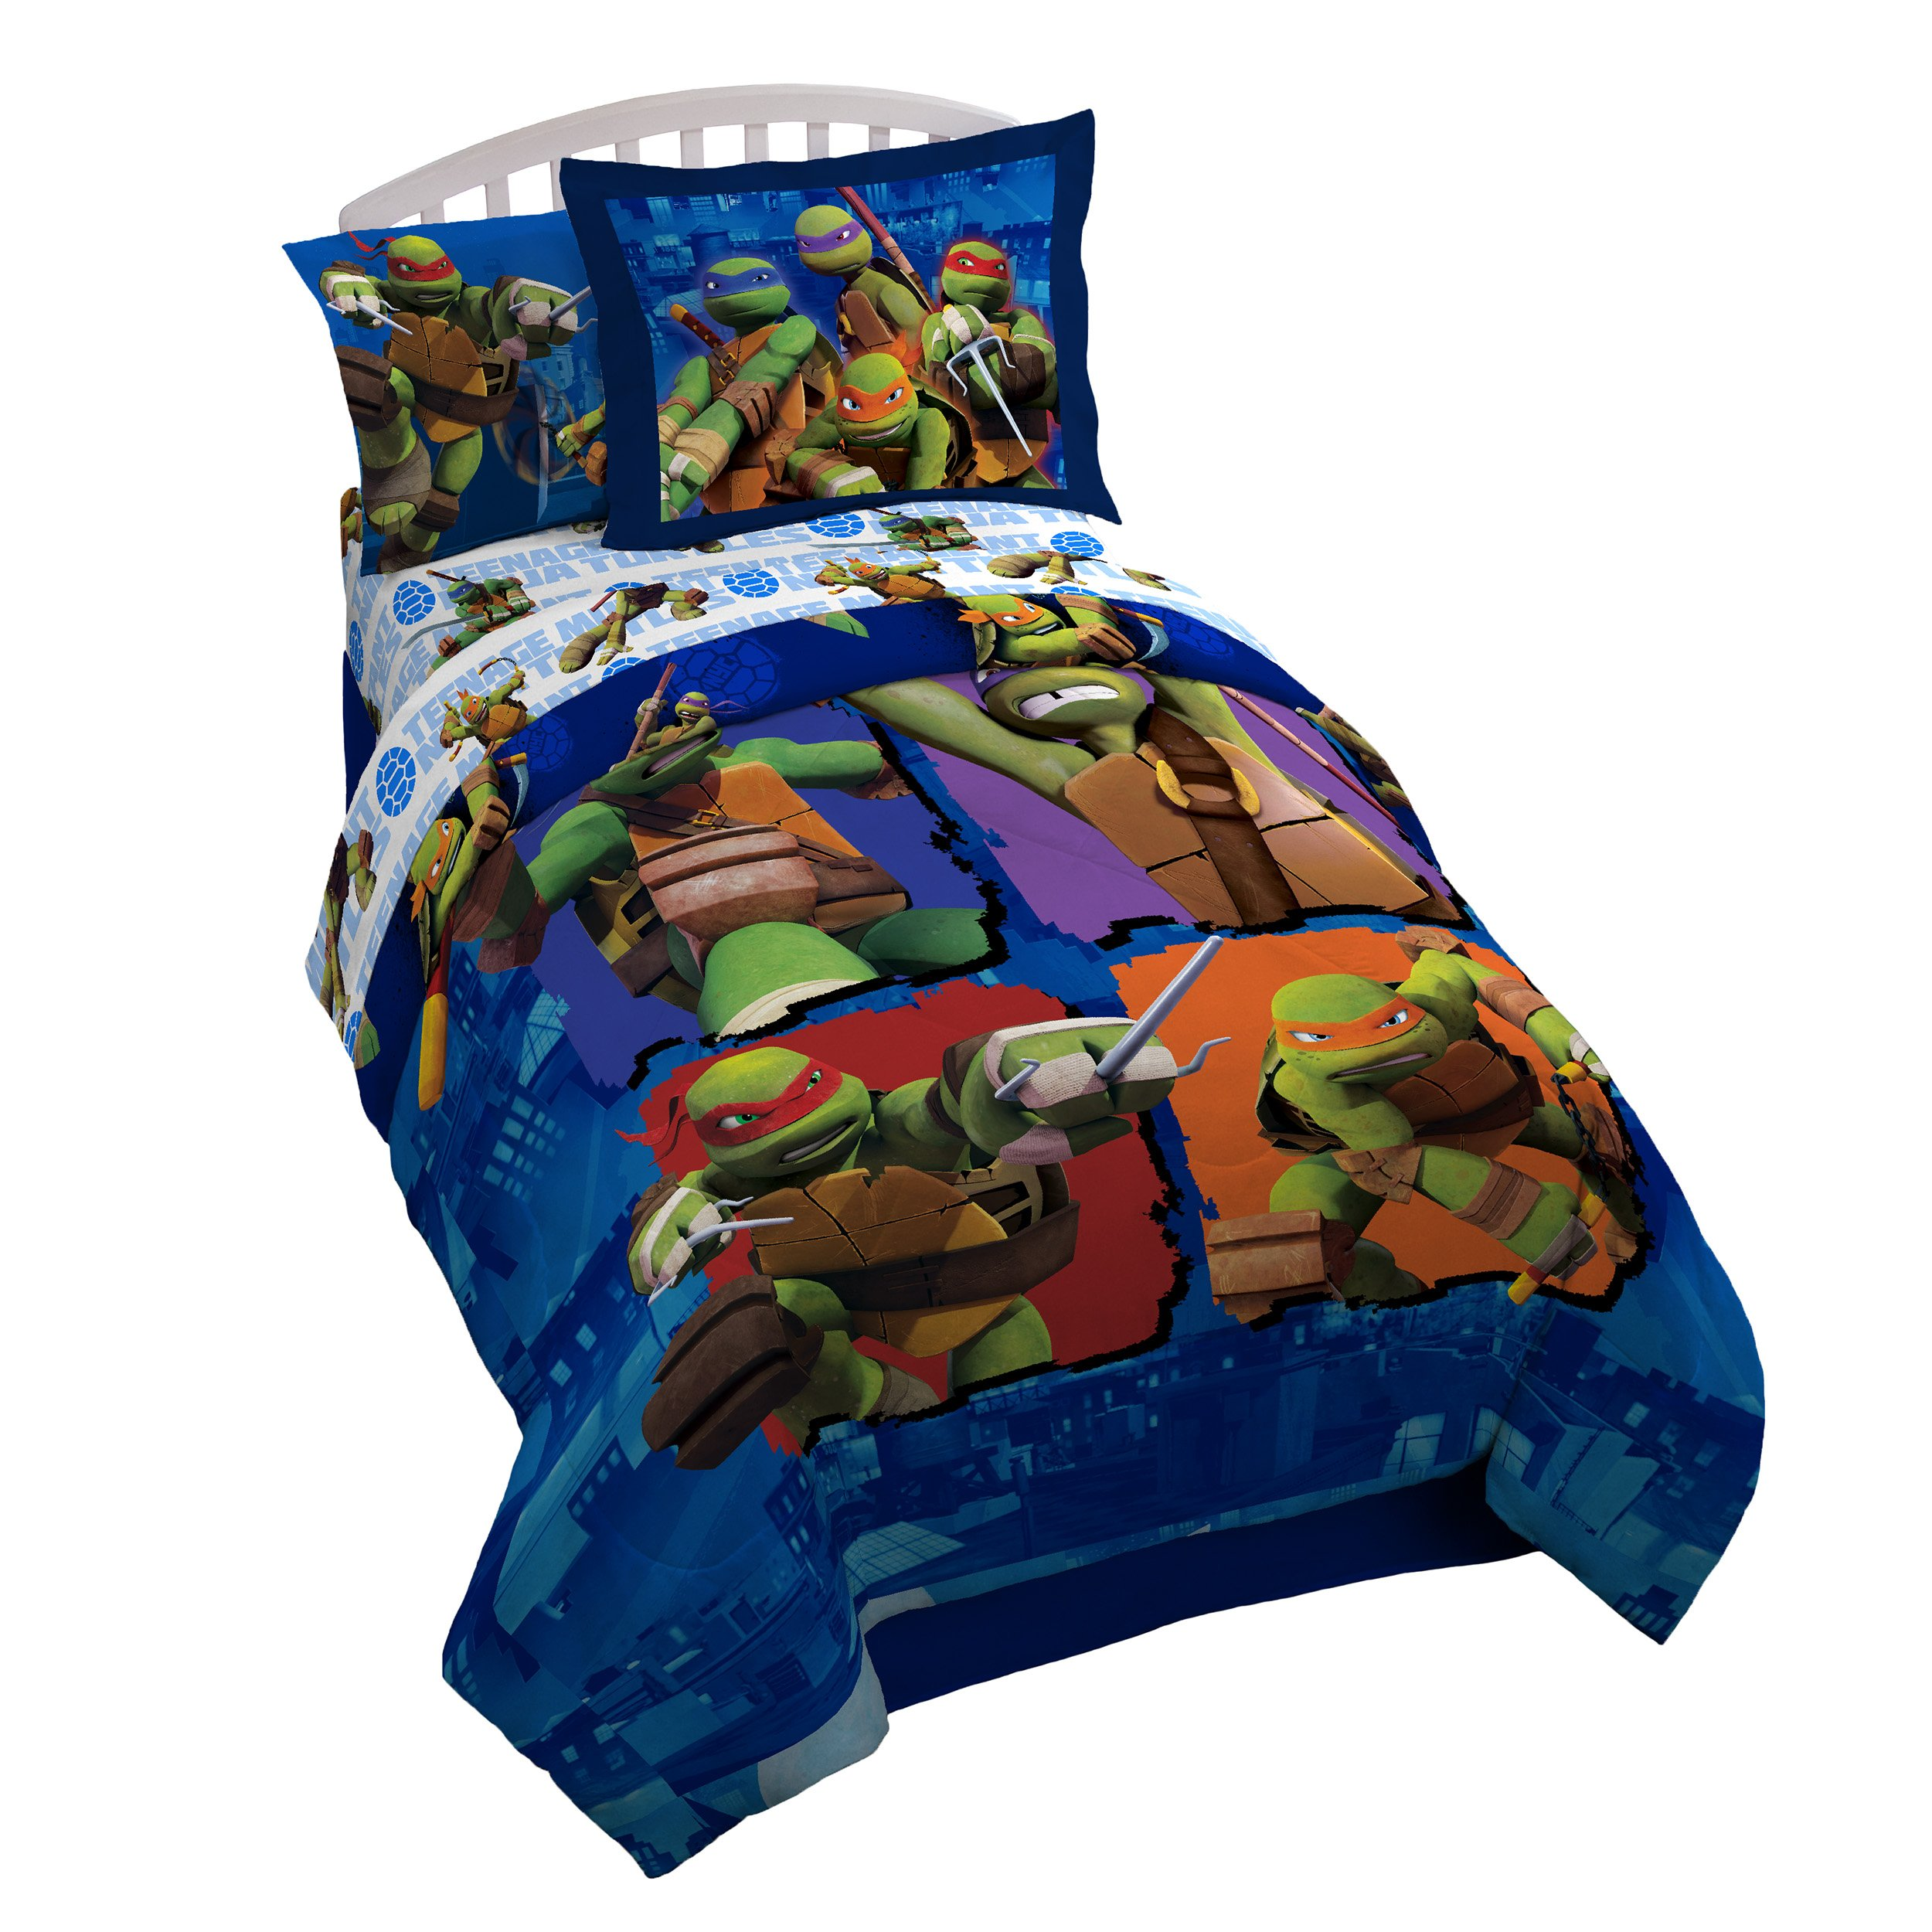 Nickelodeon Teenage Mutant Ninja Turtles City Limits Twin Comforter - Super Soft Kids Reversible Bedding features the Turtles - Fade Resistant, Includes 1 Bonus Sham (Official Nickelodeon Product)